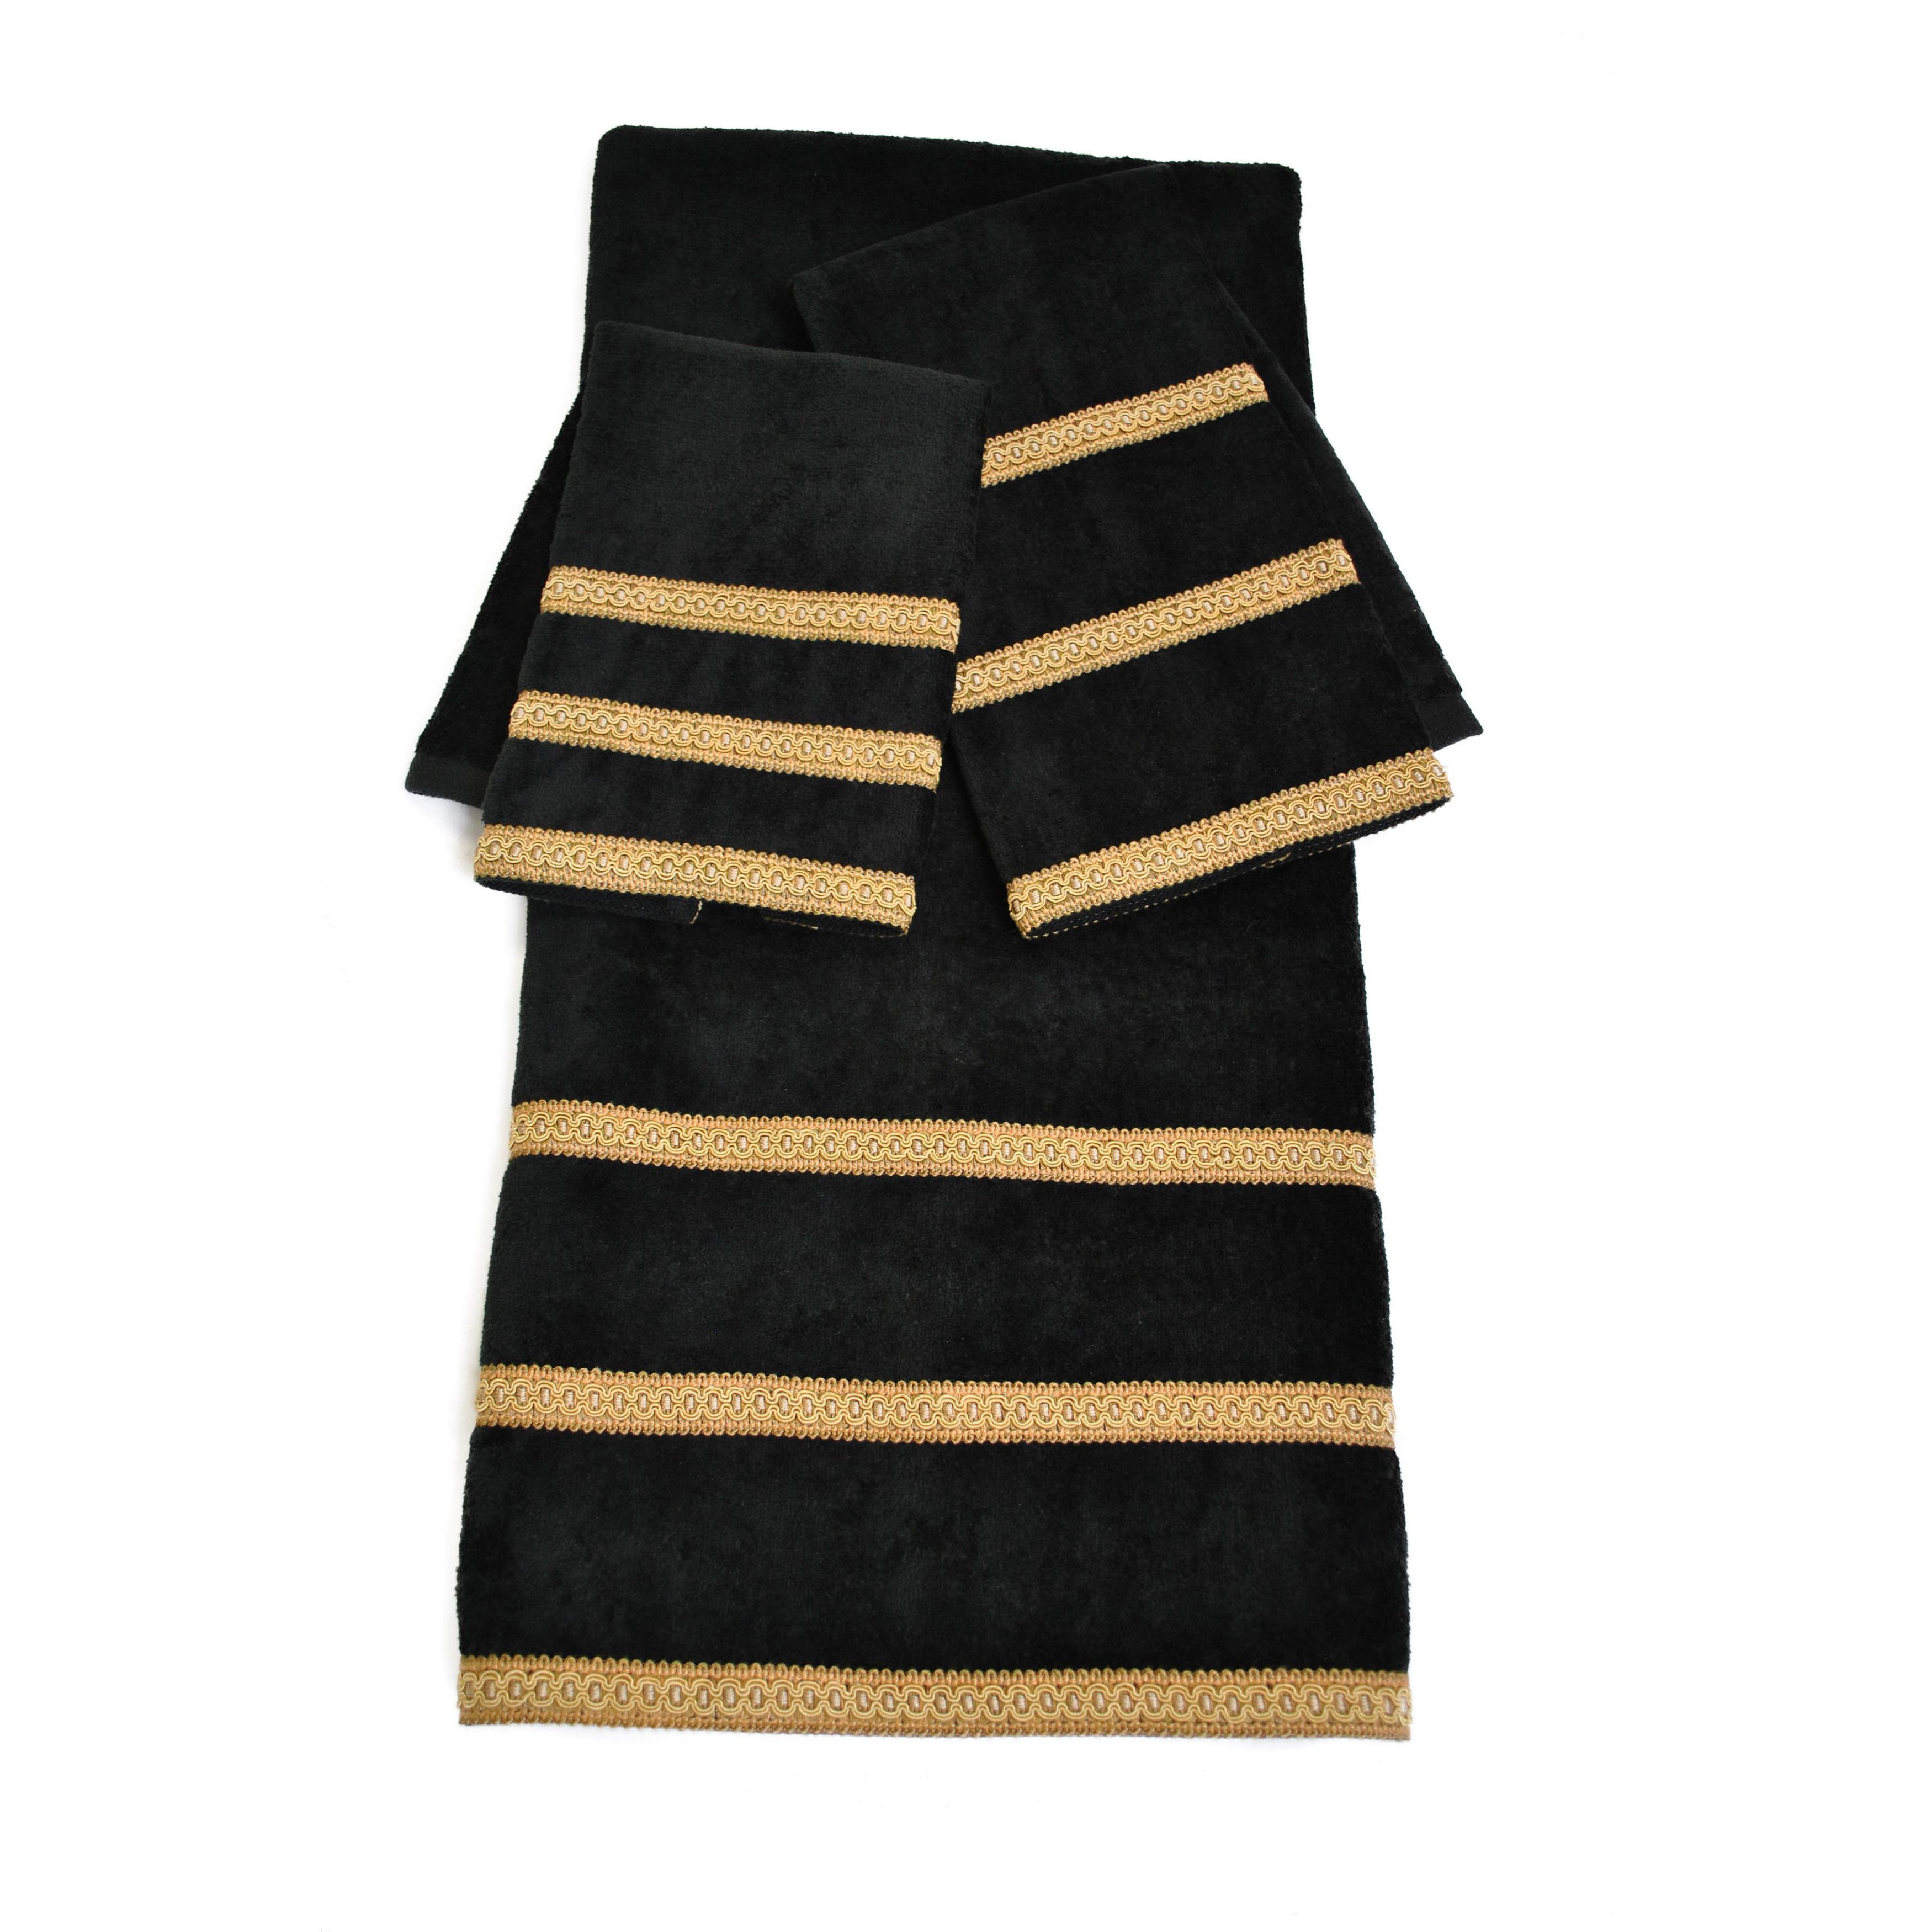 These Timeless Towels Are Great Addition To Your Bathroom Decor The Three Piece Sherry Kline Black And Gold Bathroom Gold Bathroom Decor Bathroom Towel Decor